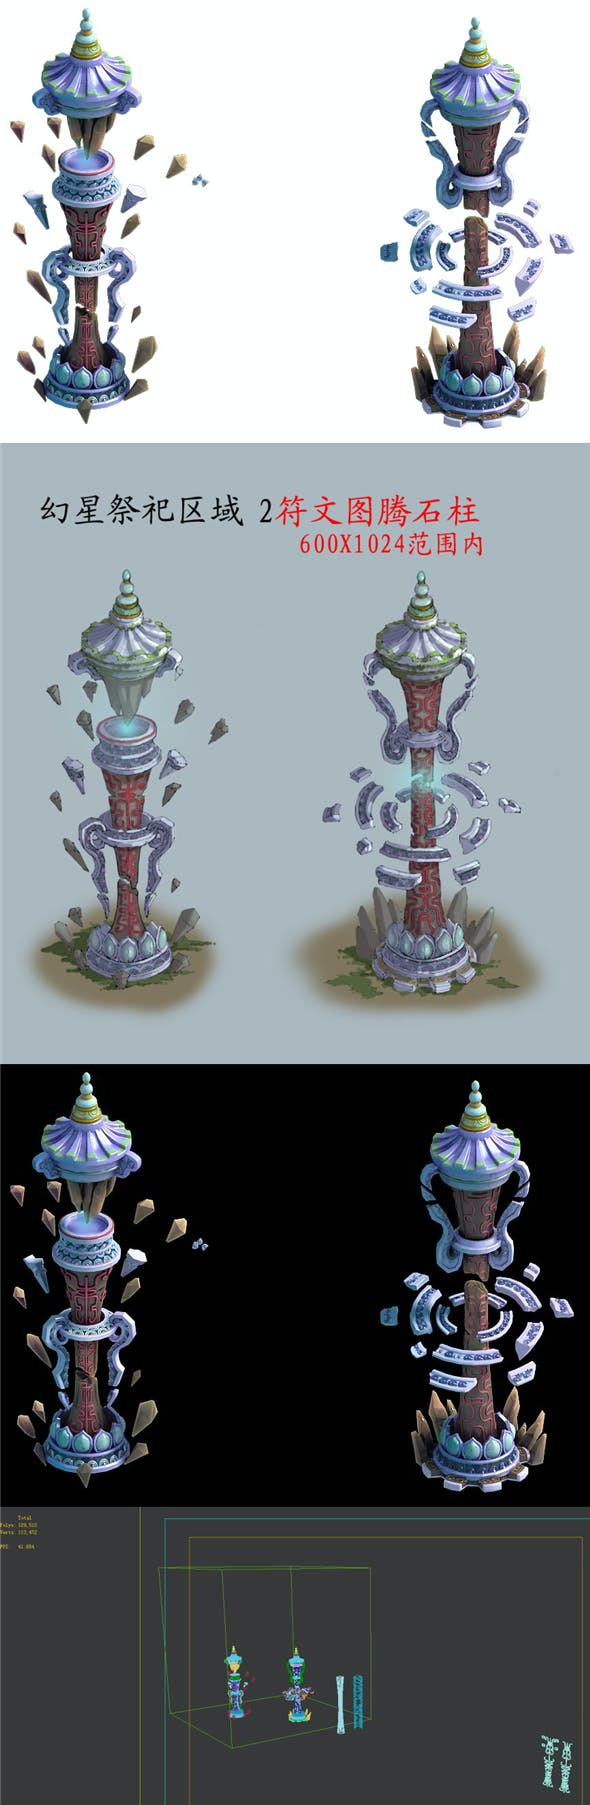 Game Model - Rune totem Stone pillars - 3DOcean Item for Sale